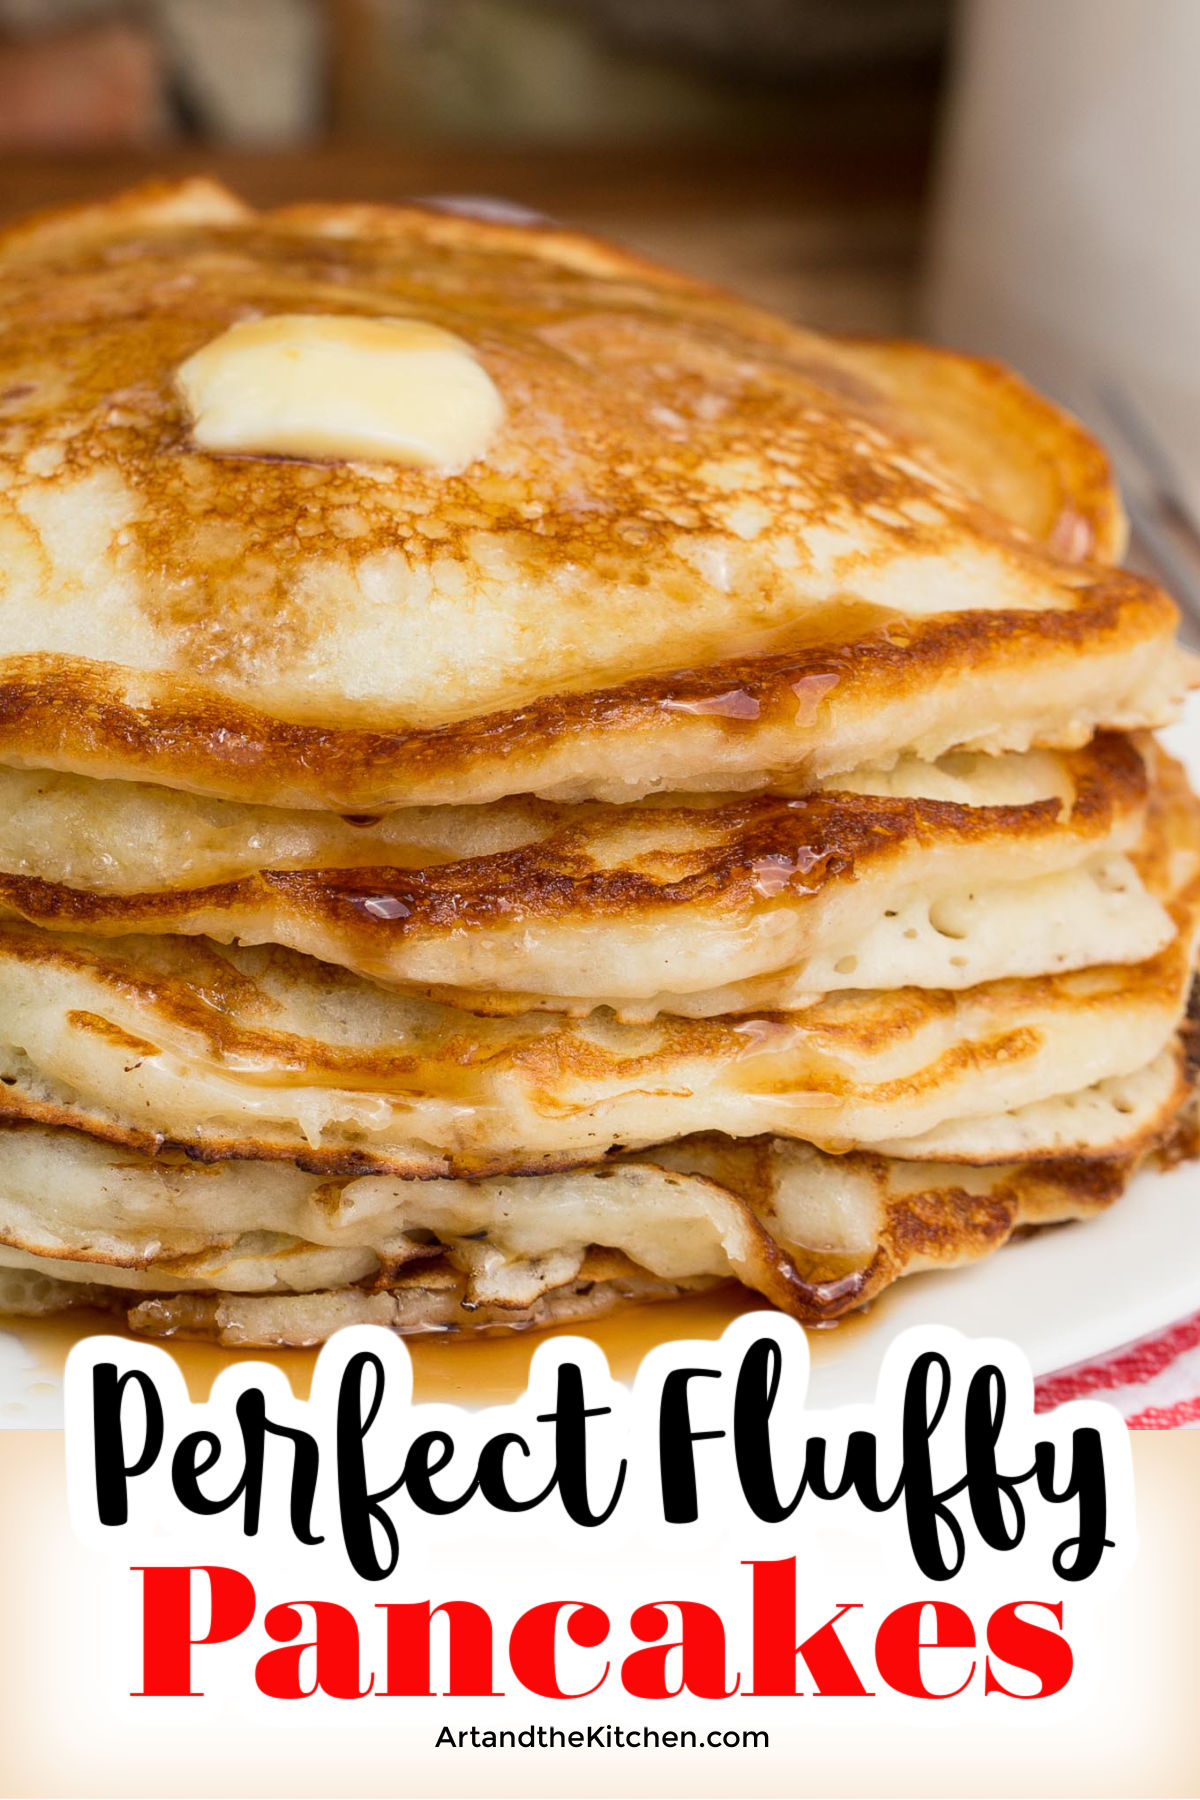 A quick and easy homemade pancake recipe that makes perfect, golden brown, super fluffy pancakes with ingredients you have on hand. via @artandthekitch